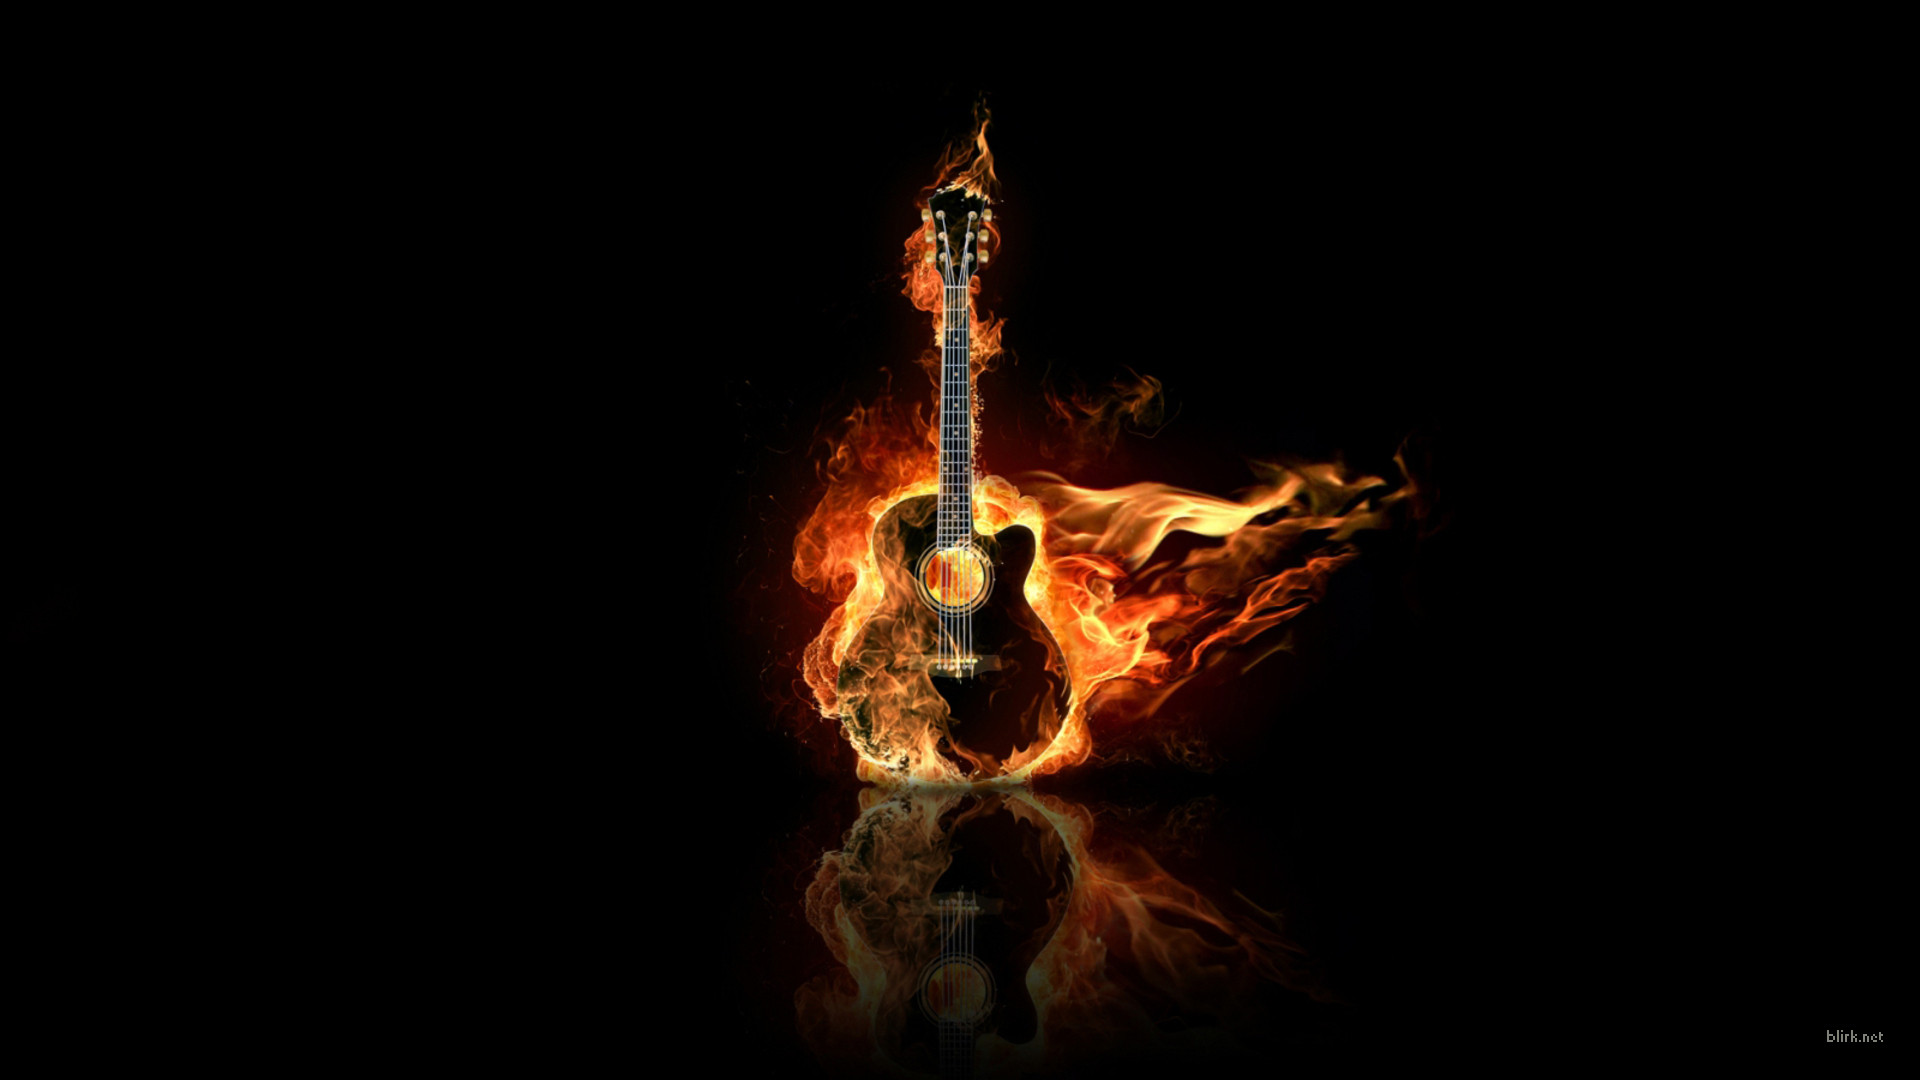 cool guitar wallpapers  hd wallpapers in music imagesci.com